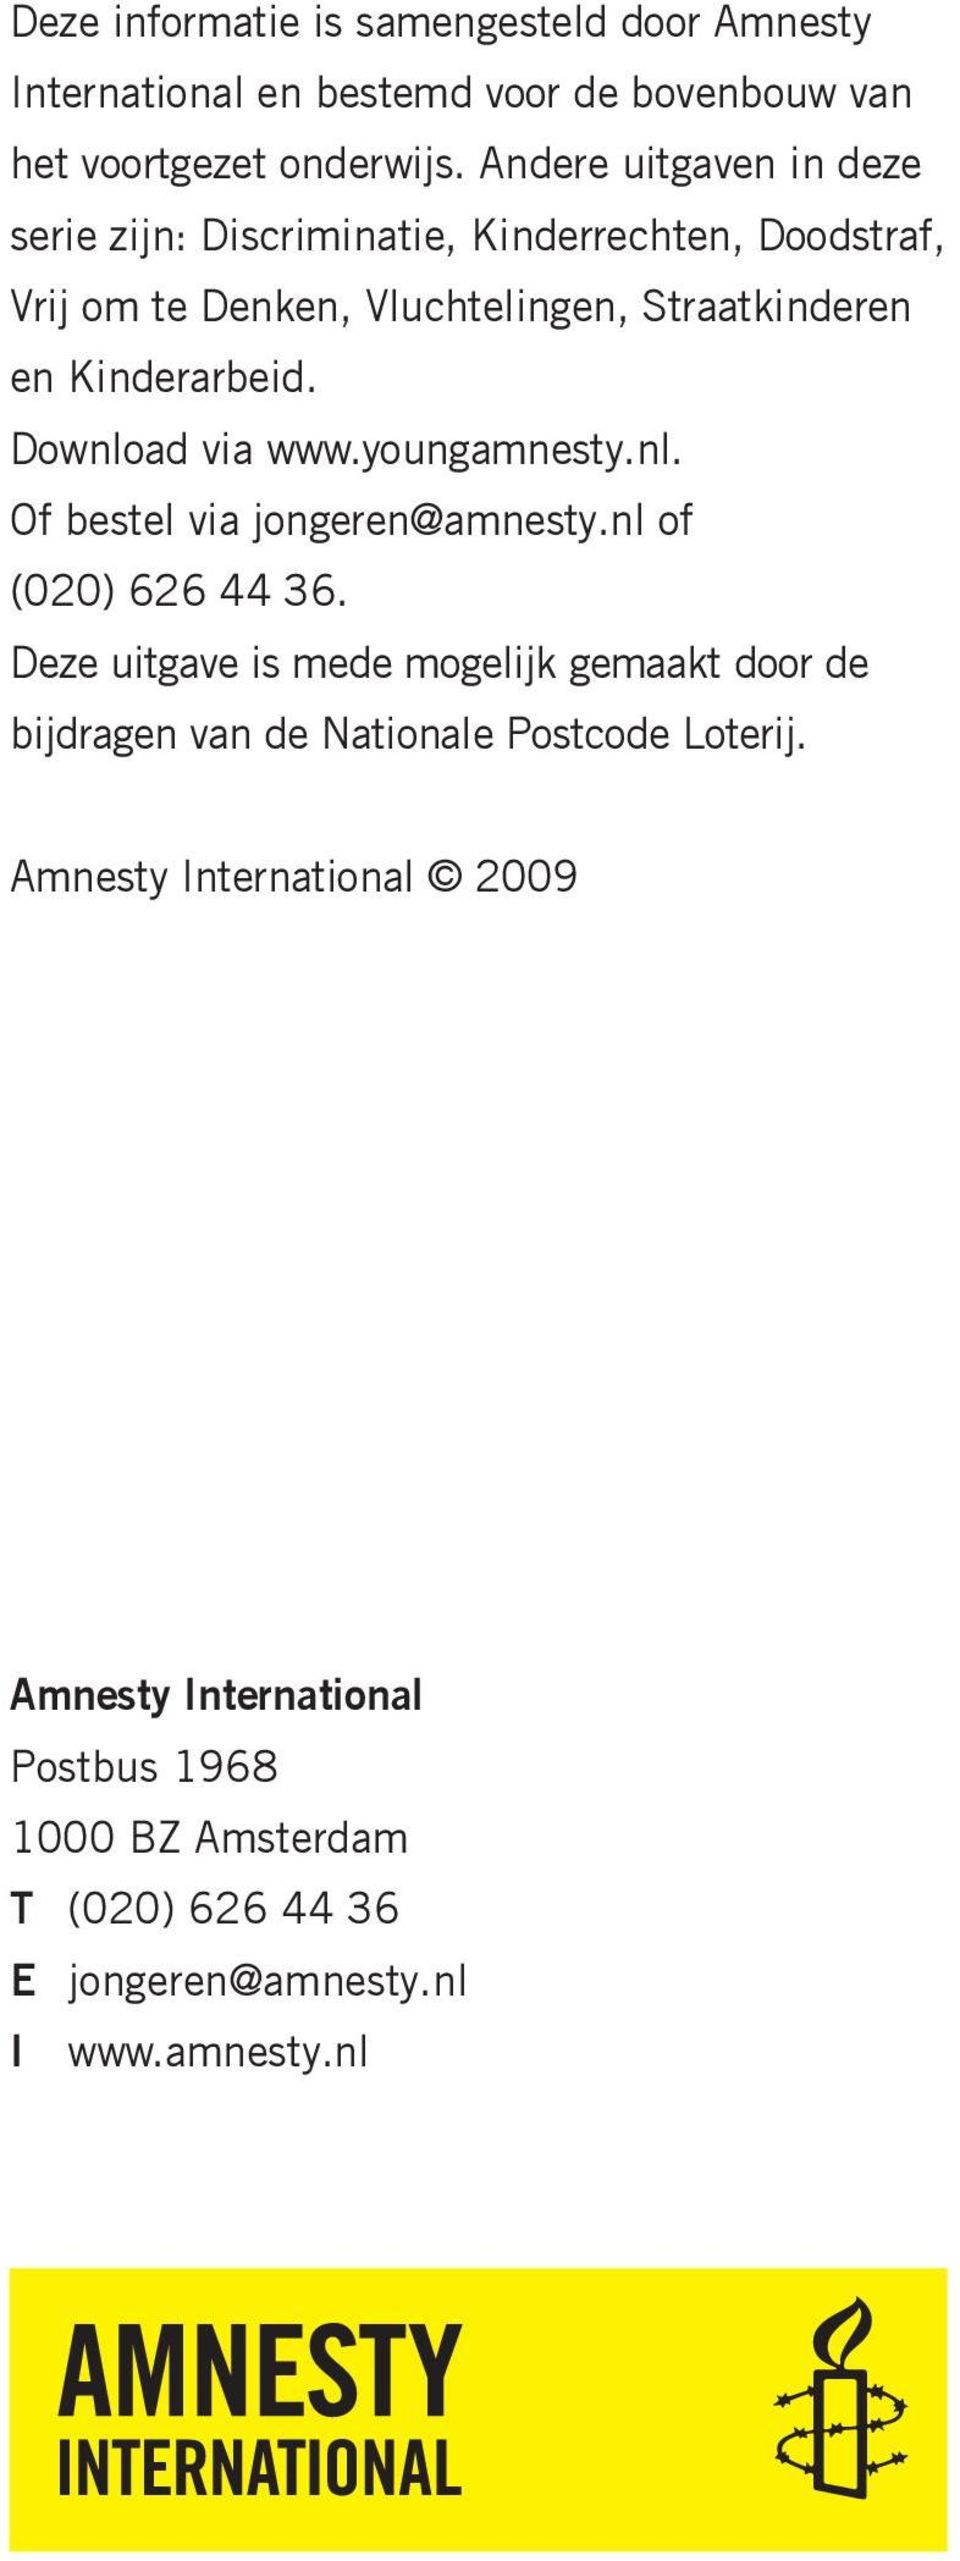 Download via www.youngamnesty.nl. Of bestel via jongeren@amnesty.nl of (020) 626 44 36.